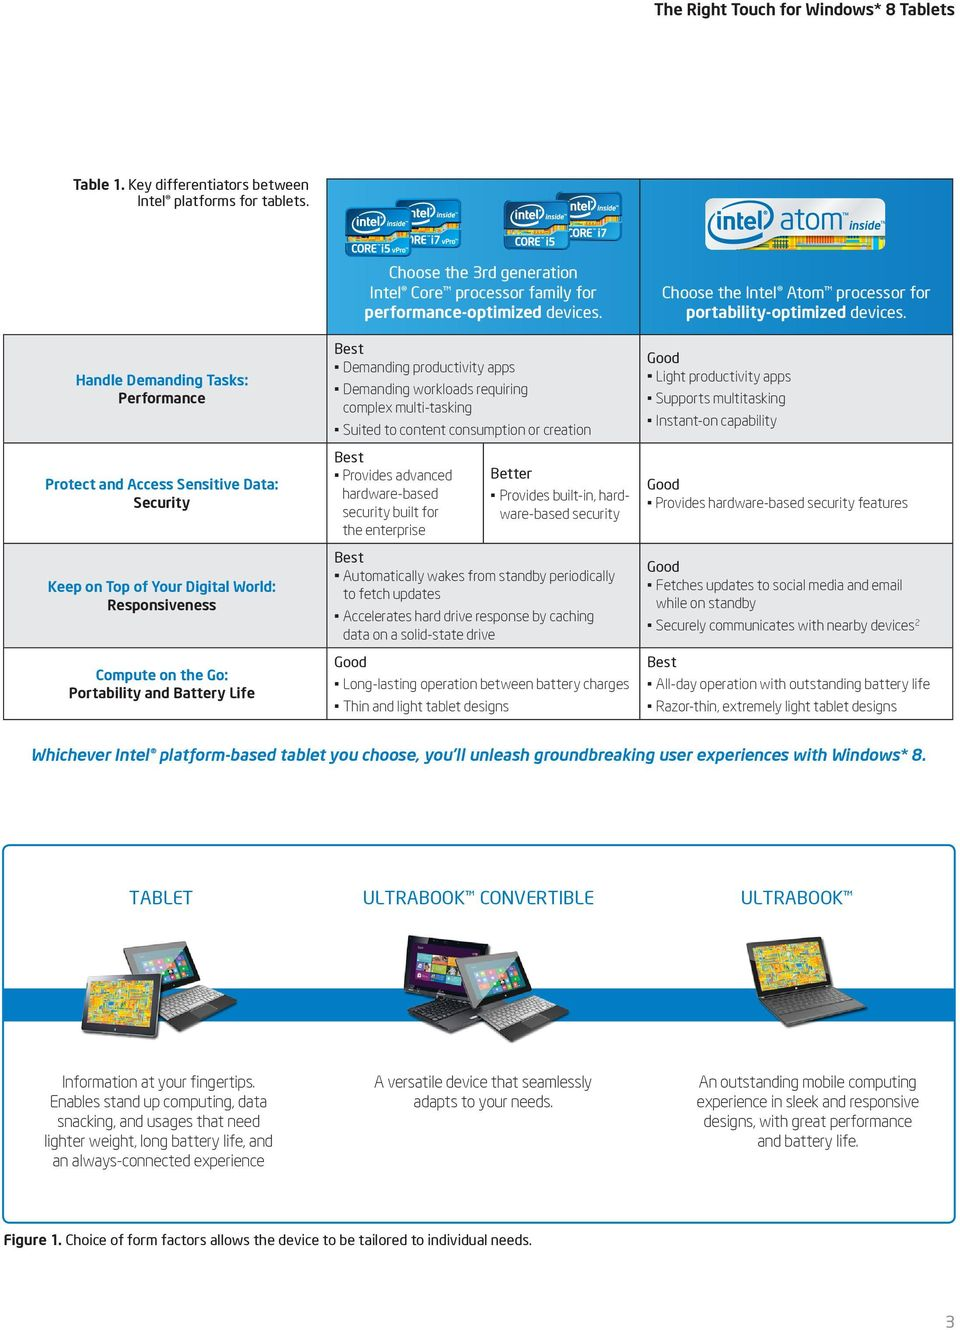 generation Intel Core processor family for performance-optimized devices.